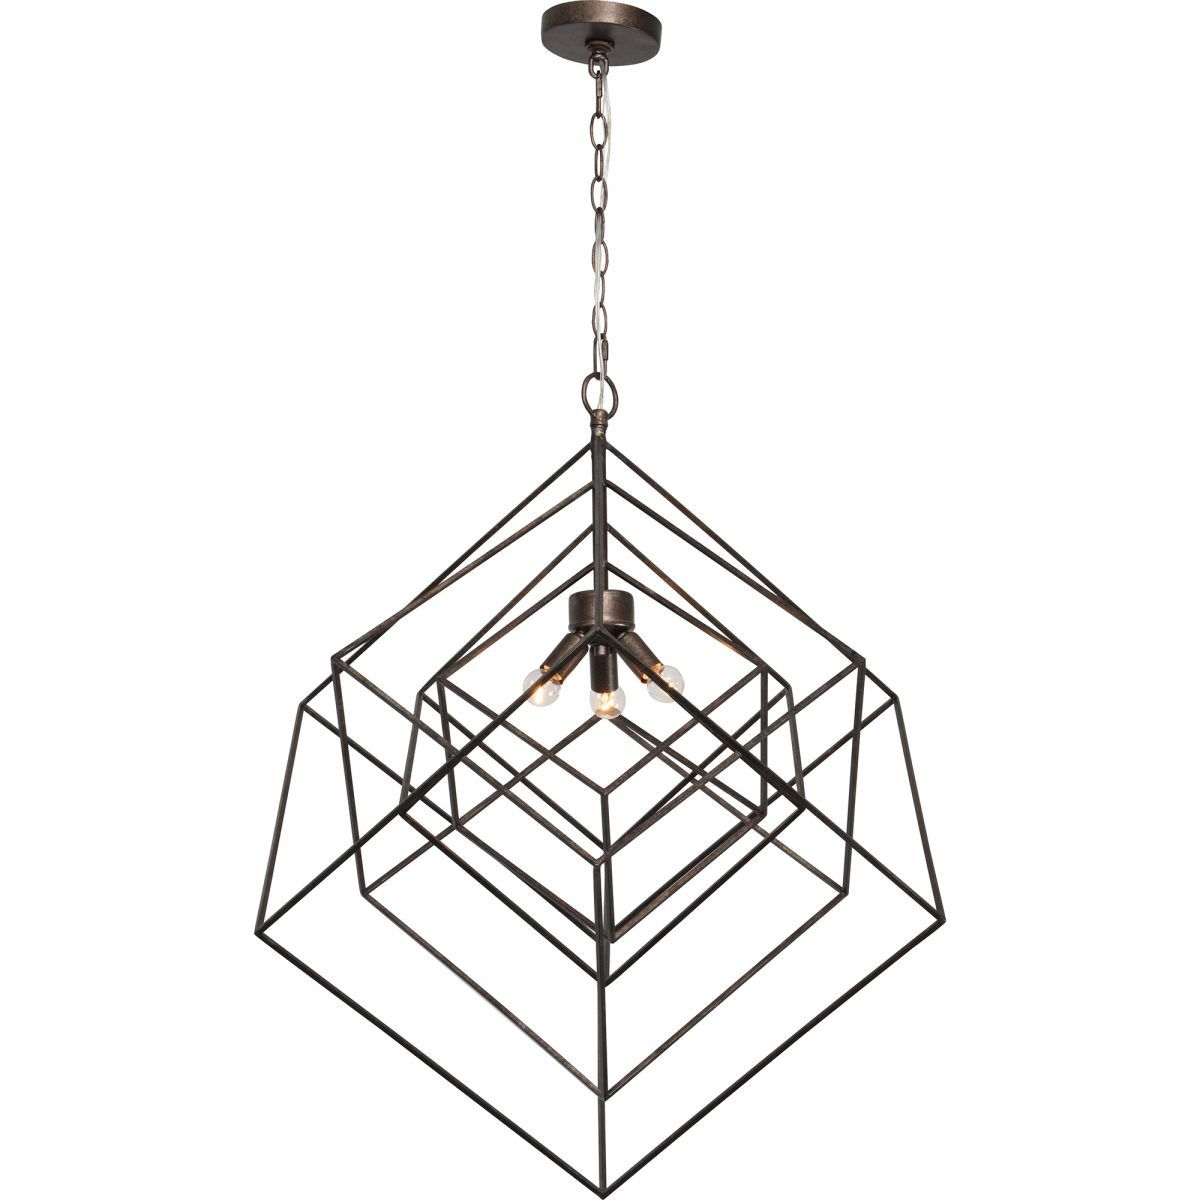 andrano ceiling fixtures lighting wp lighting pinterest rh pinterest com